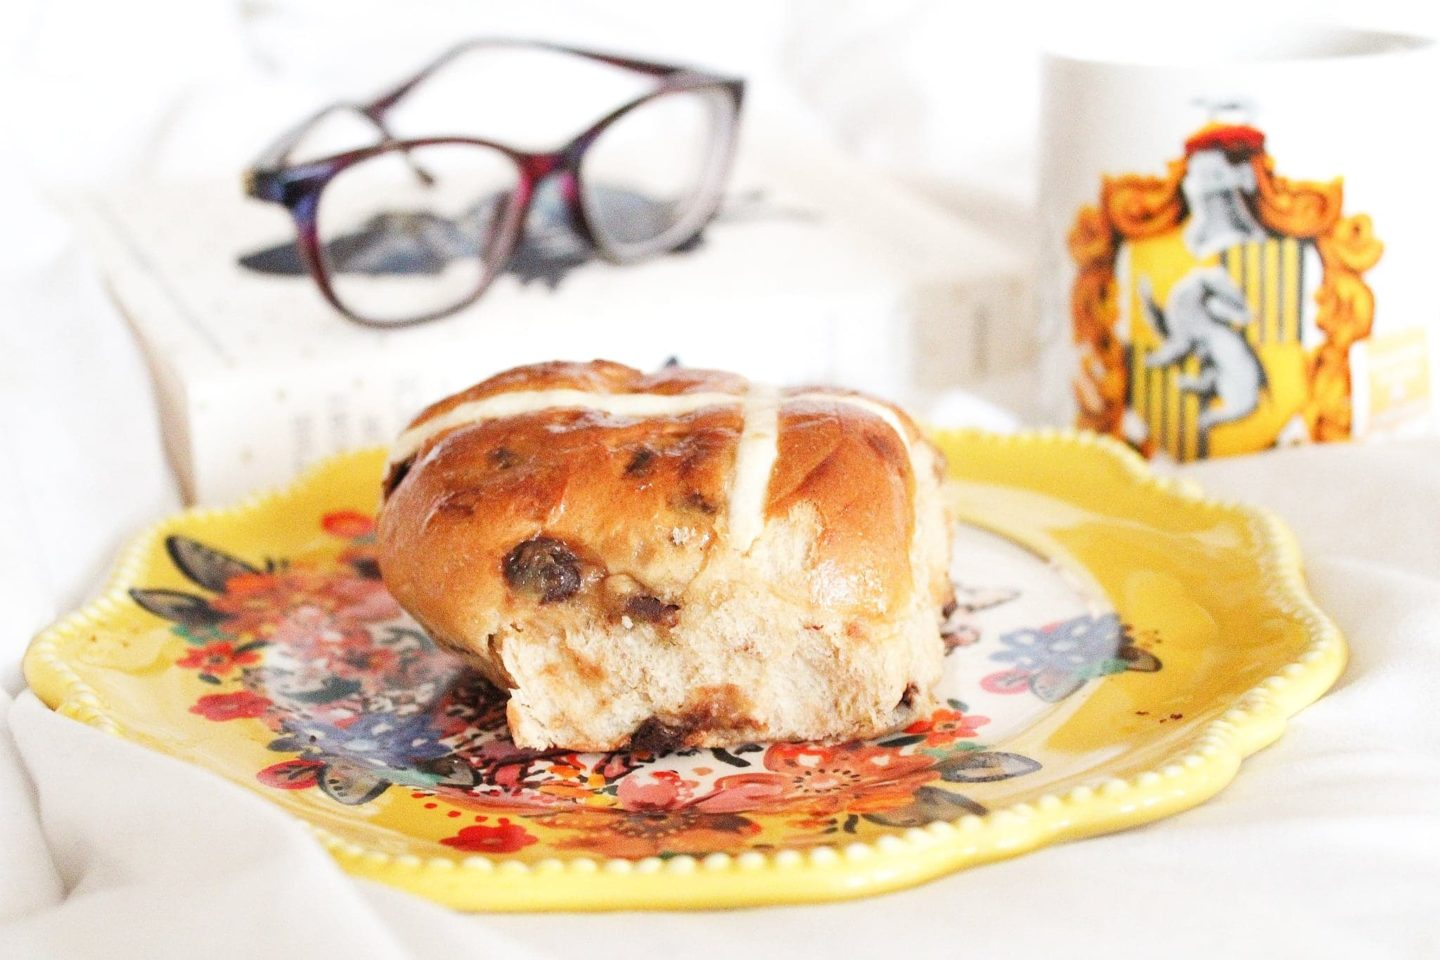 M&S Salted Caramel and Chocolate Hot Cross Buns